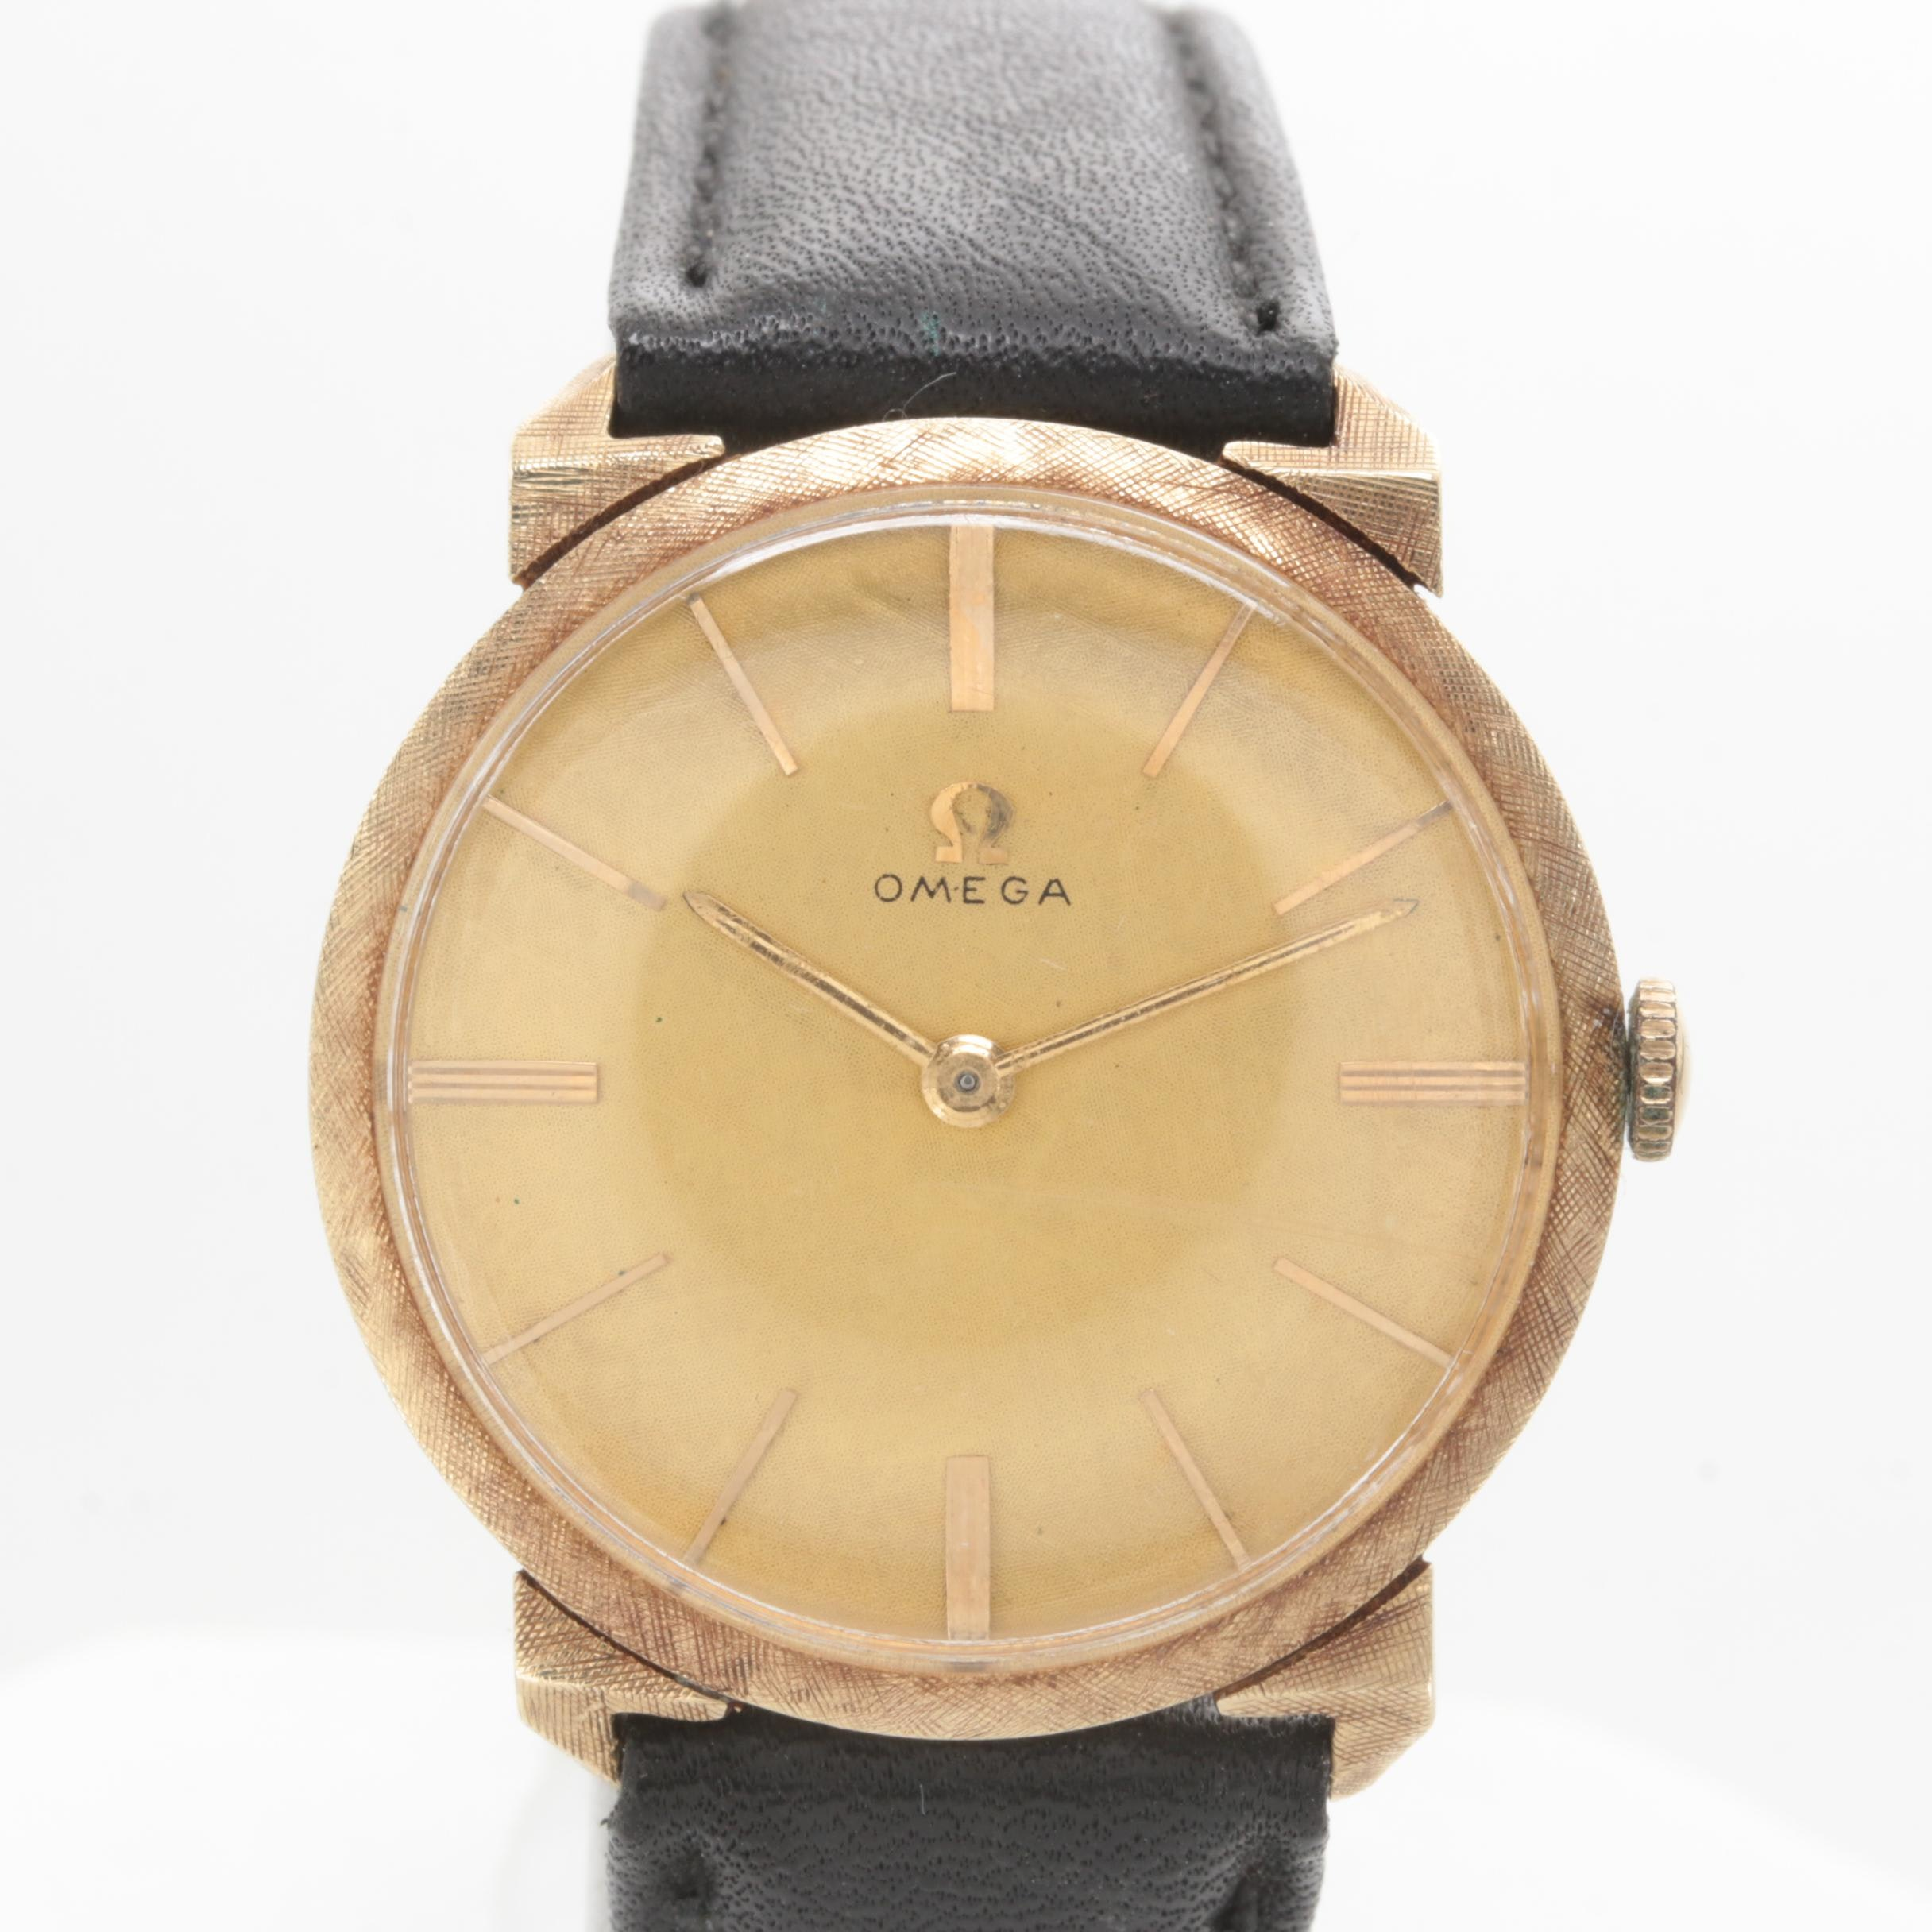 Omega 14K Yellow Gold Leather Strap Wristwatch